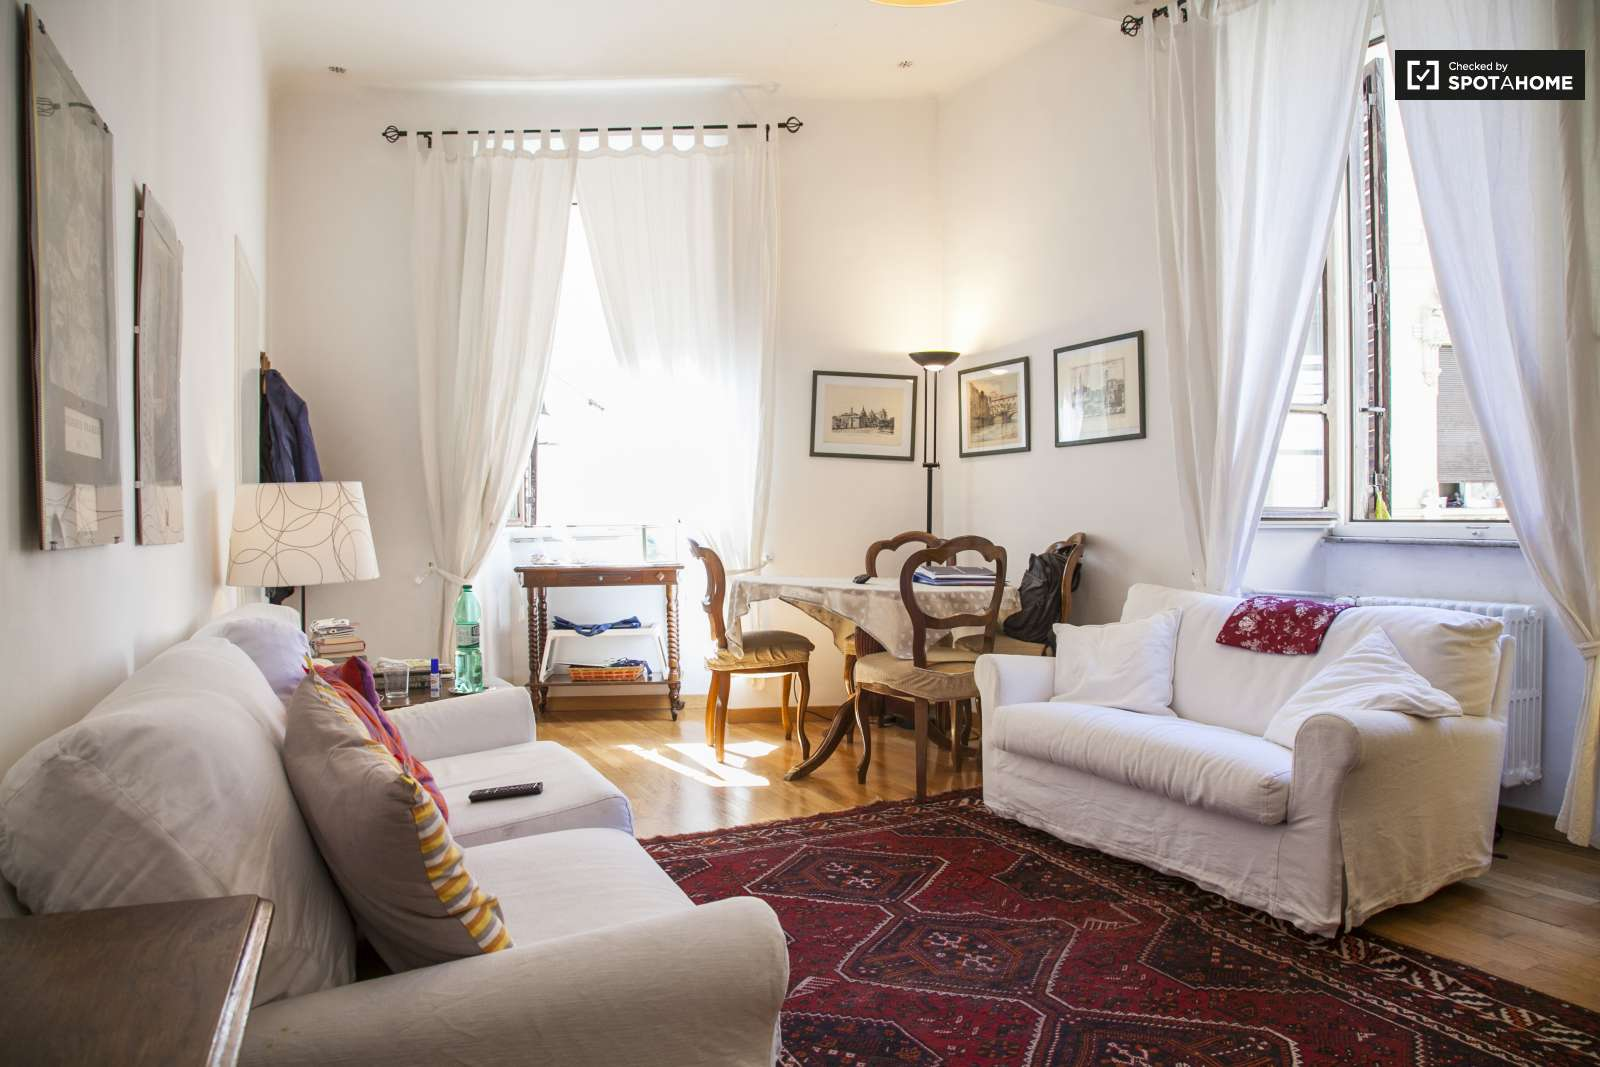 1-bedroom apartment for rent near metro in Spagna (ref: 134073 ...